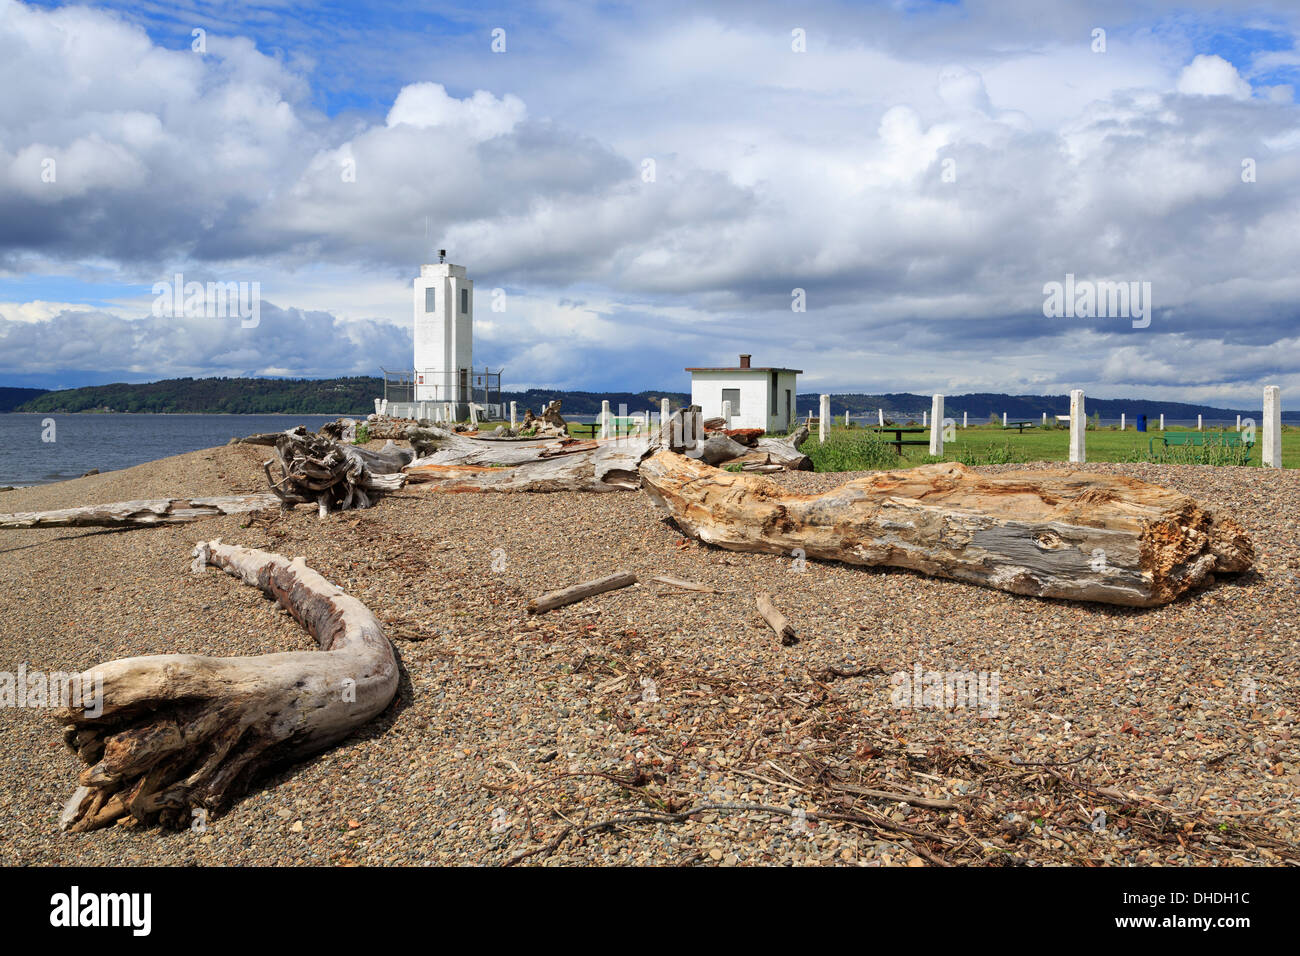 Brown's Point Lighthouse, Tacoma, Washington State, United States of America, North America - Stock Image